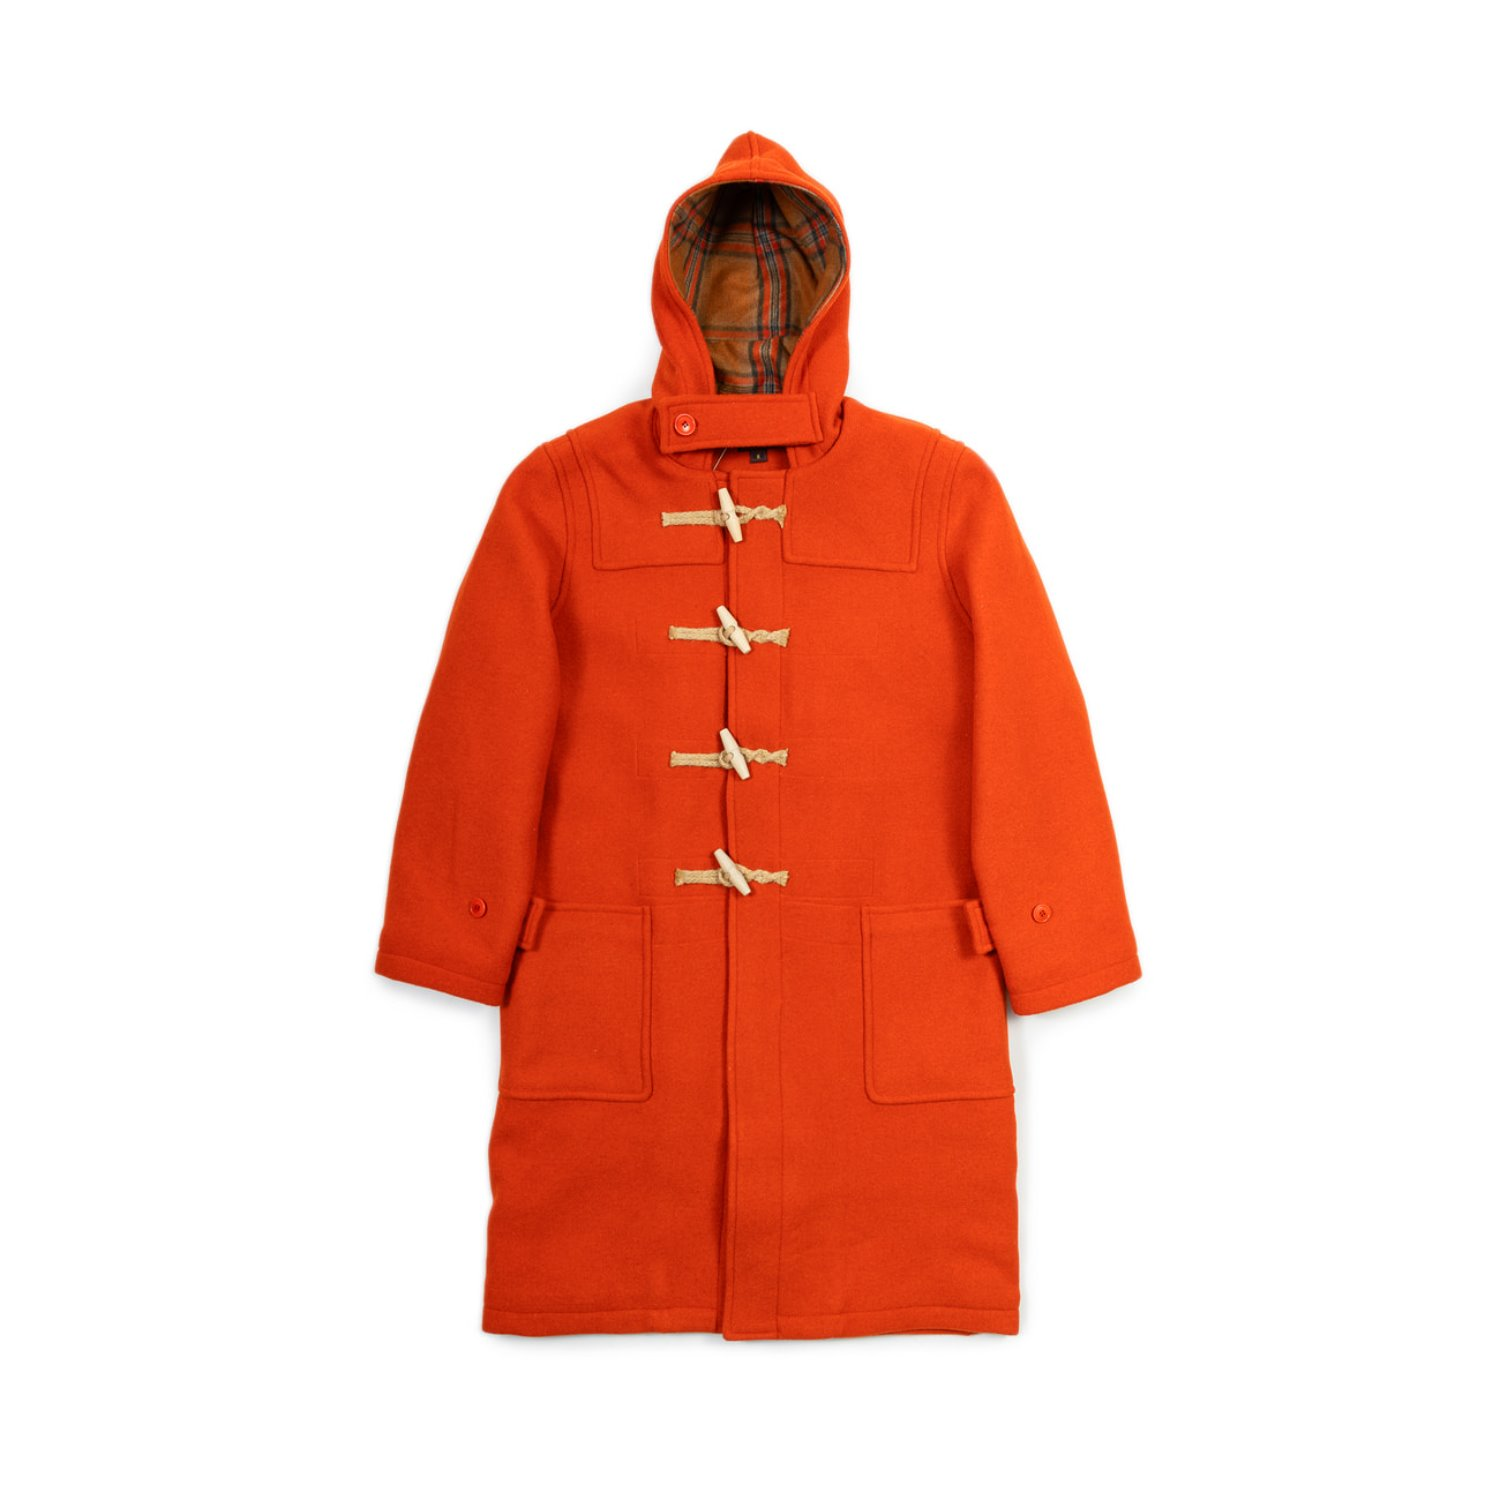 Big Union Duffle Coat (Orange)